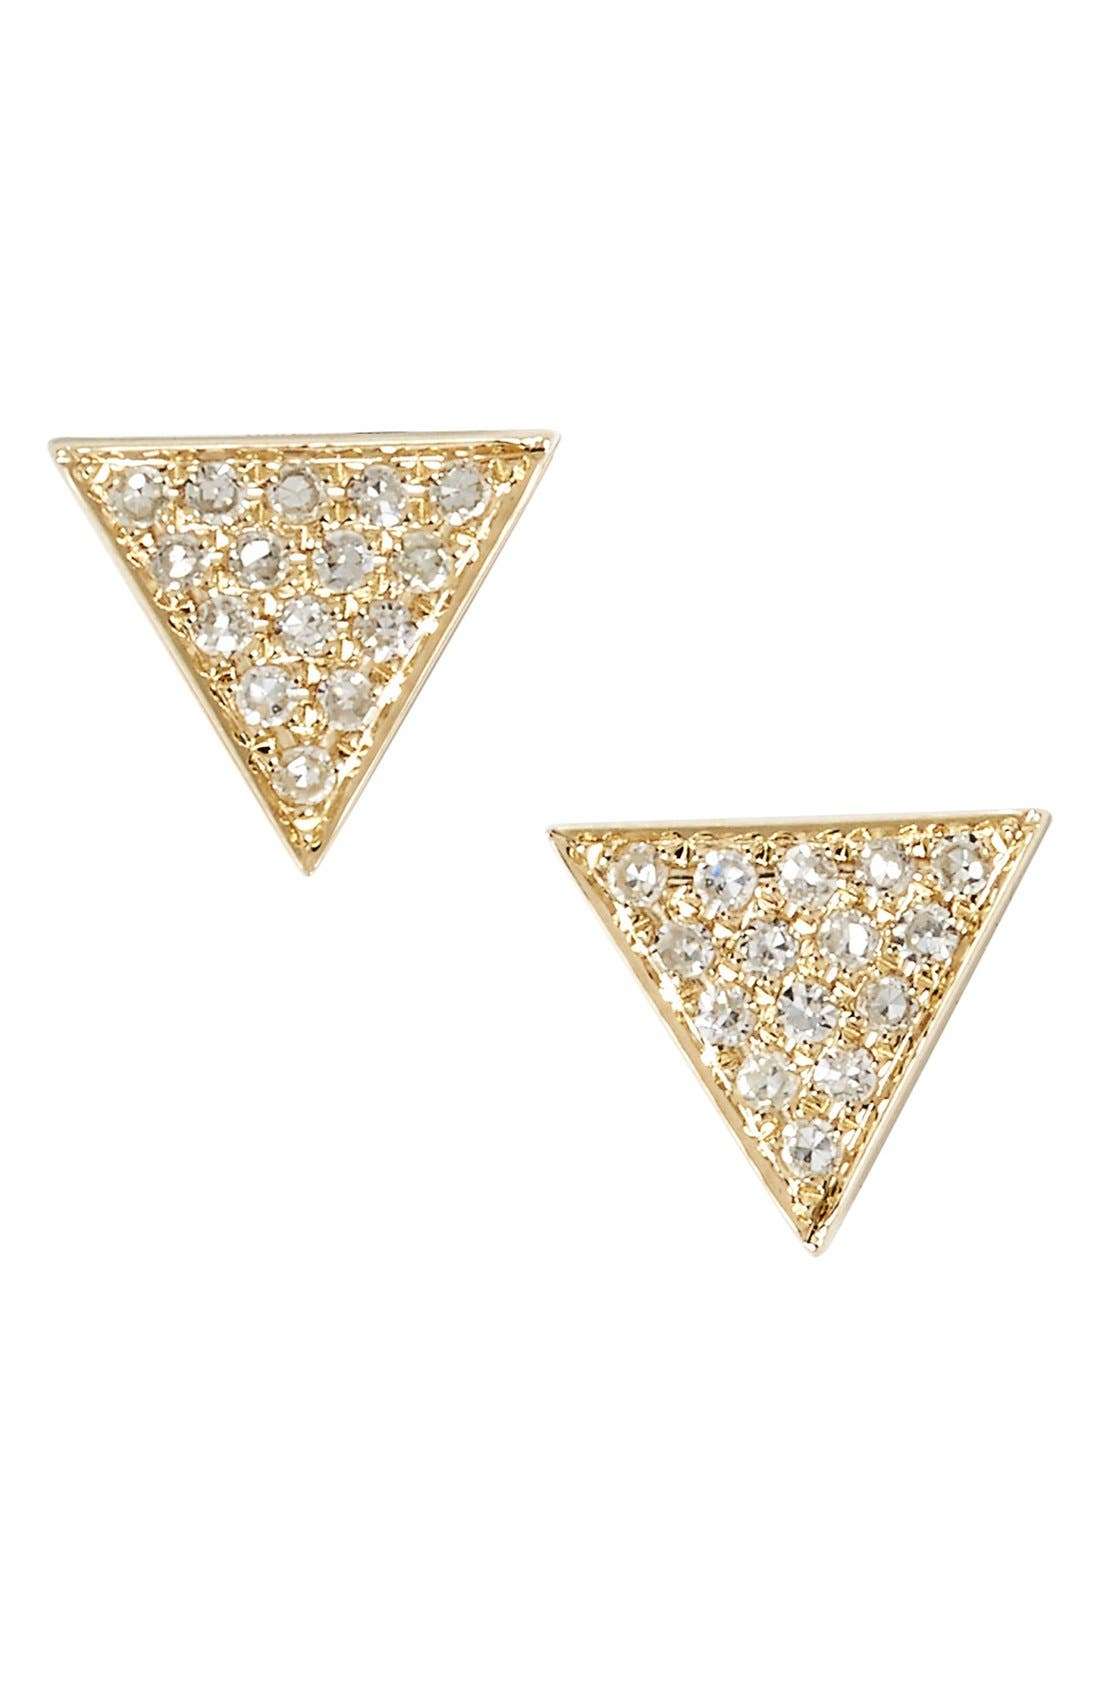 DANA REBECCA DESIGNS 'Emily Sarah' Diamond Pavé Triangle